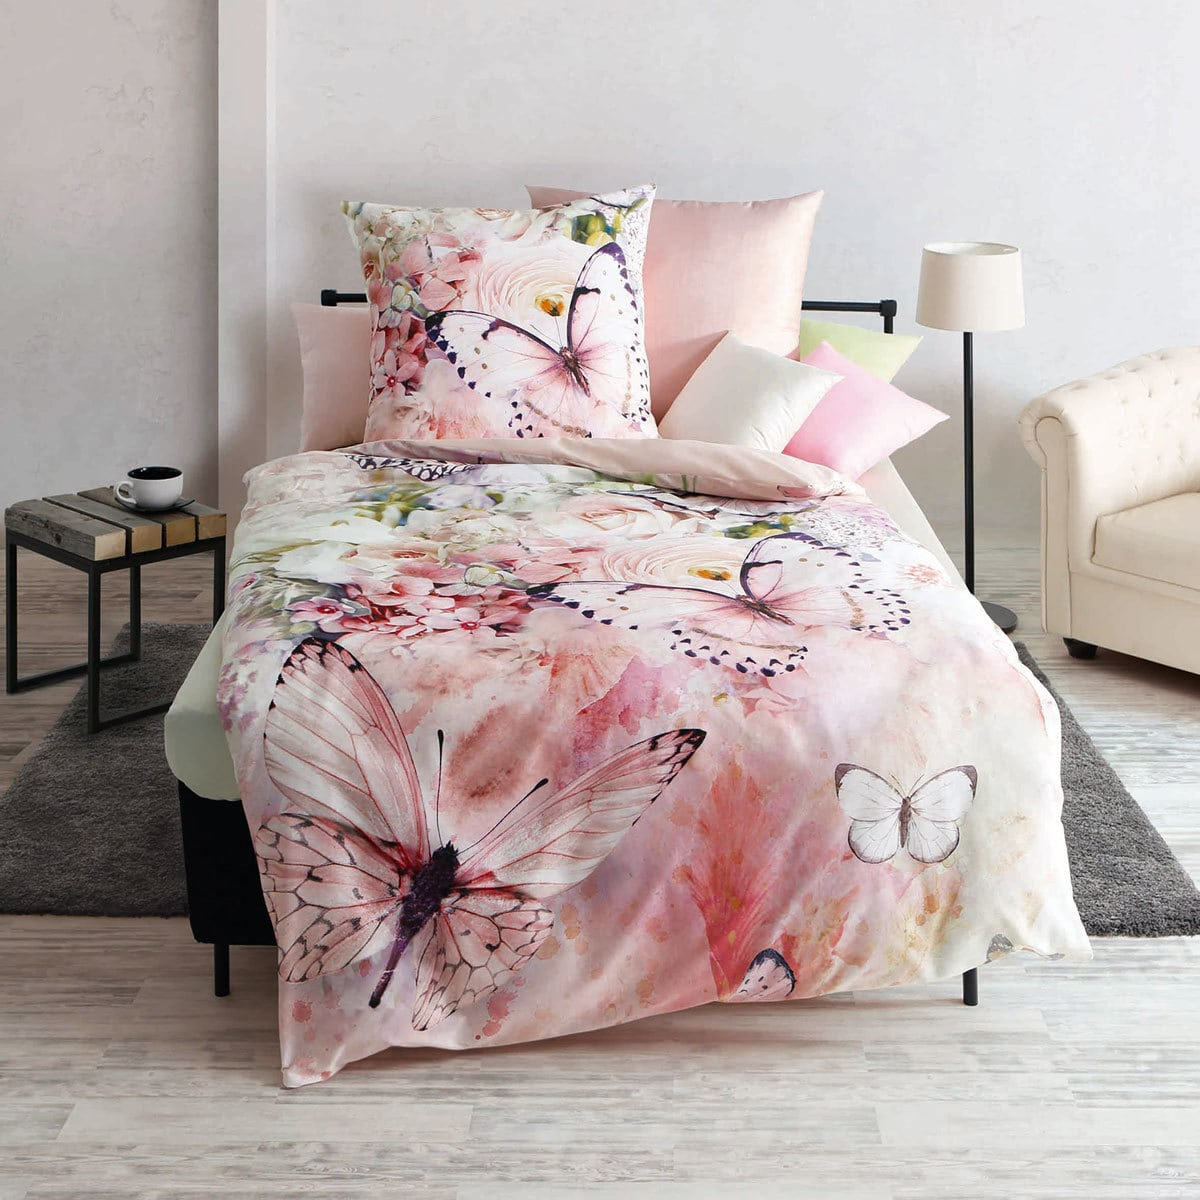 Kaeppel Mako Satin Bettwäsche Butterfly Dreams Rose Günstig Online